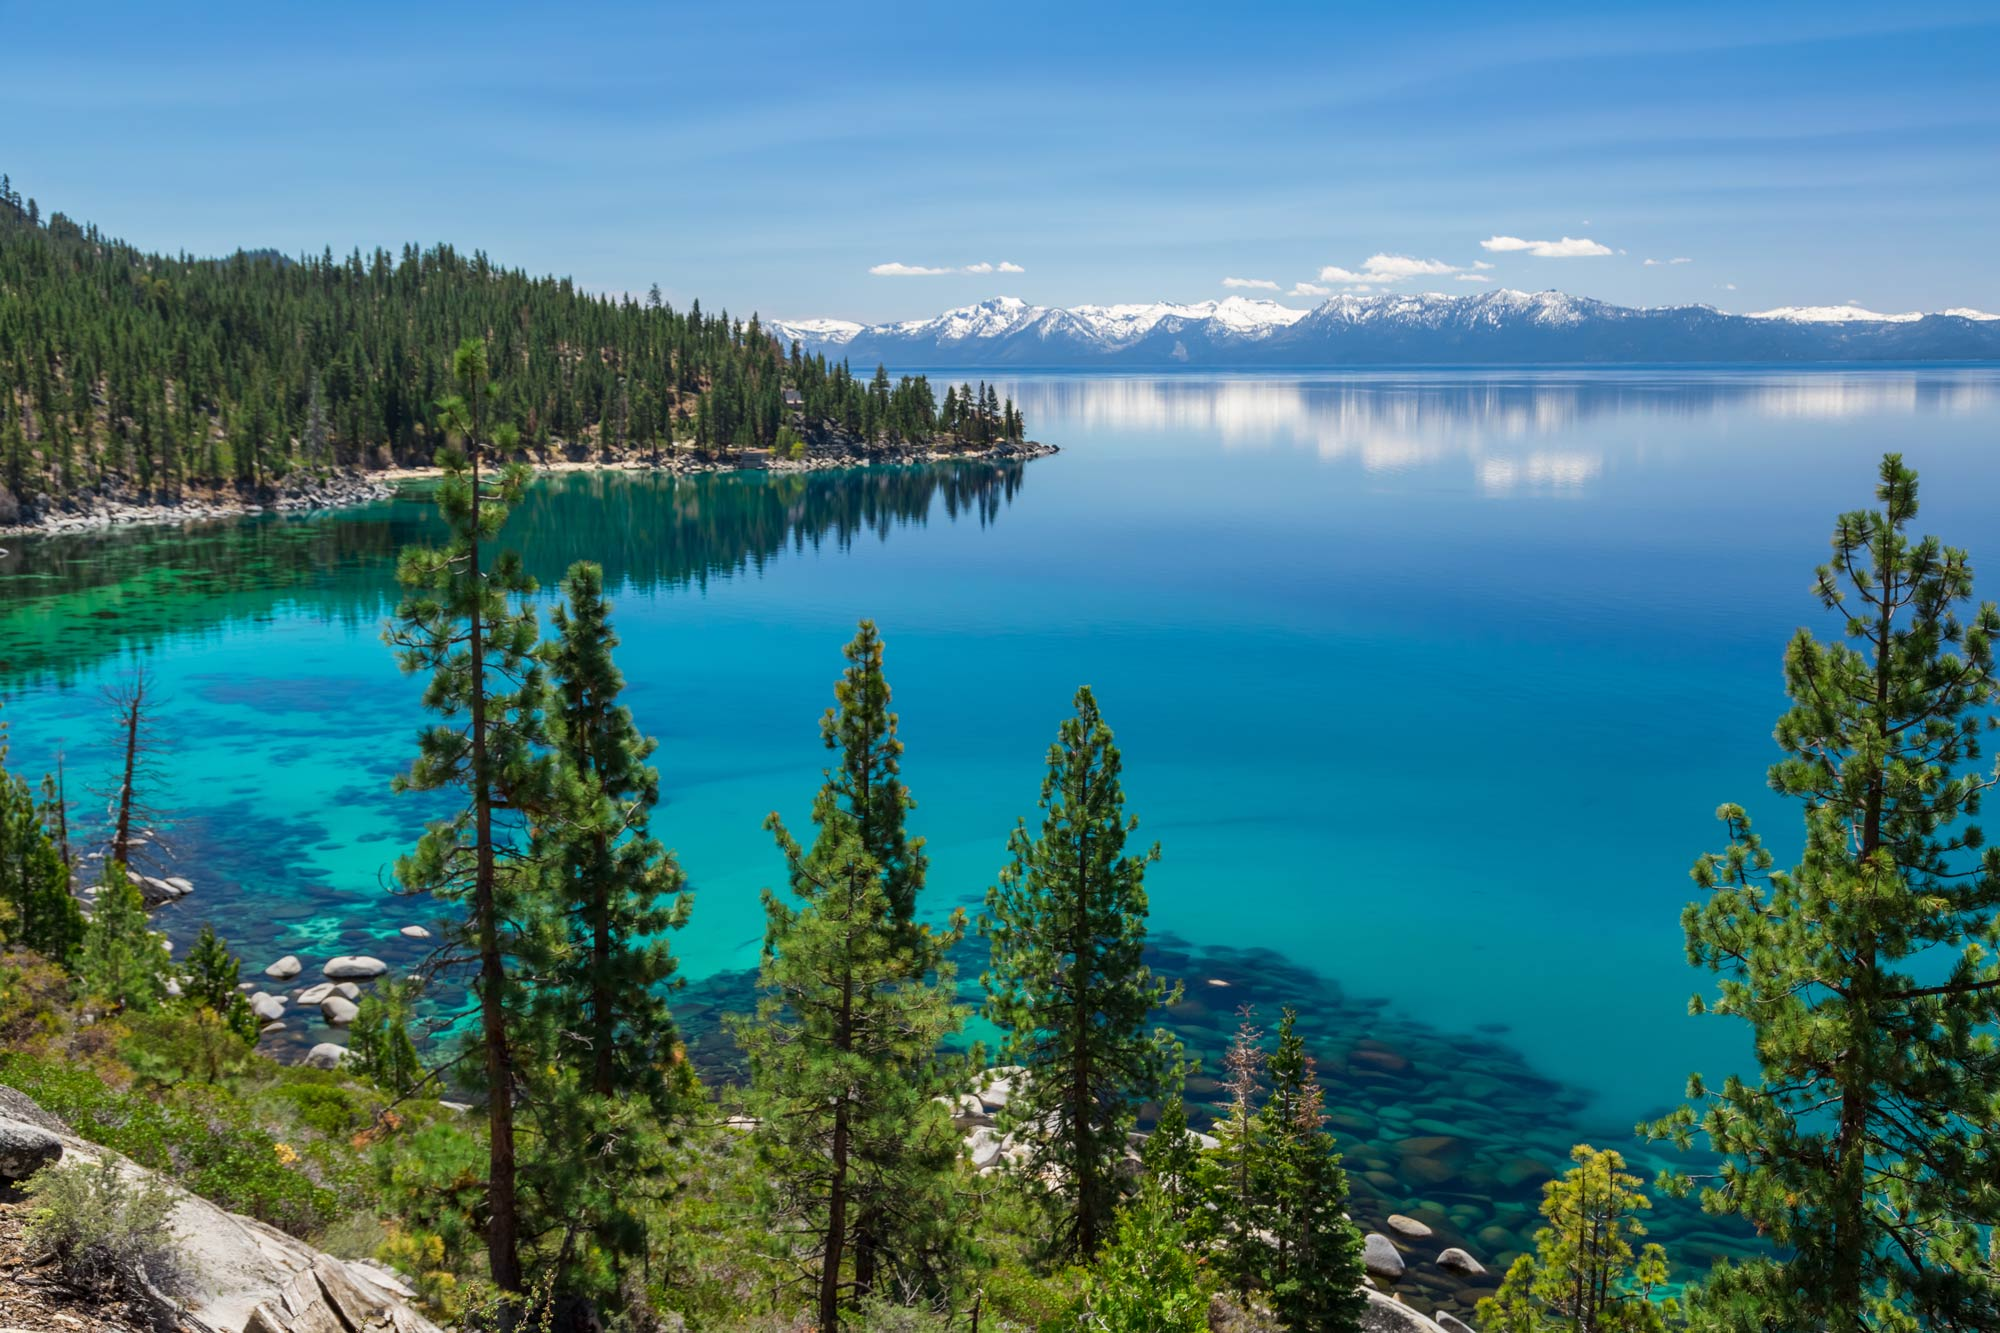 An aerial view of Lake Tahoe with mountains and blue skies in the background